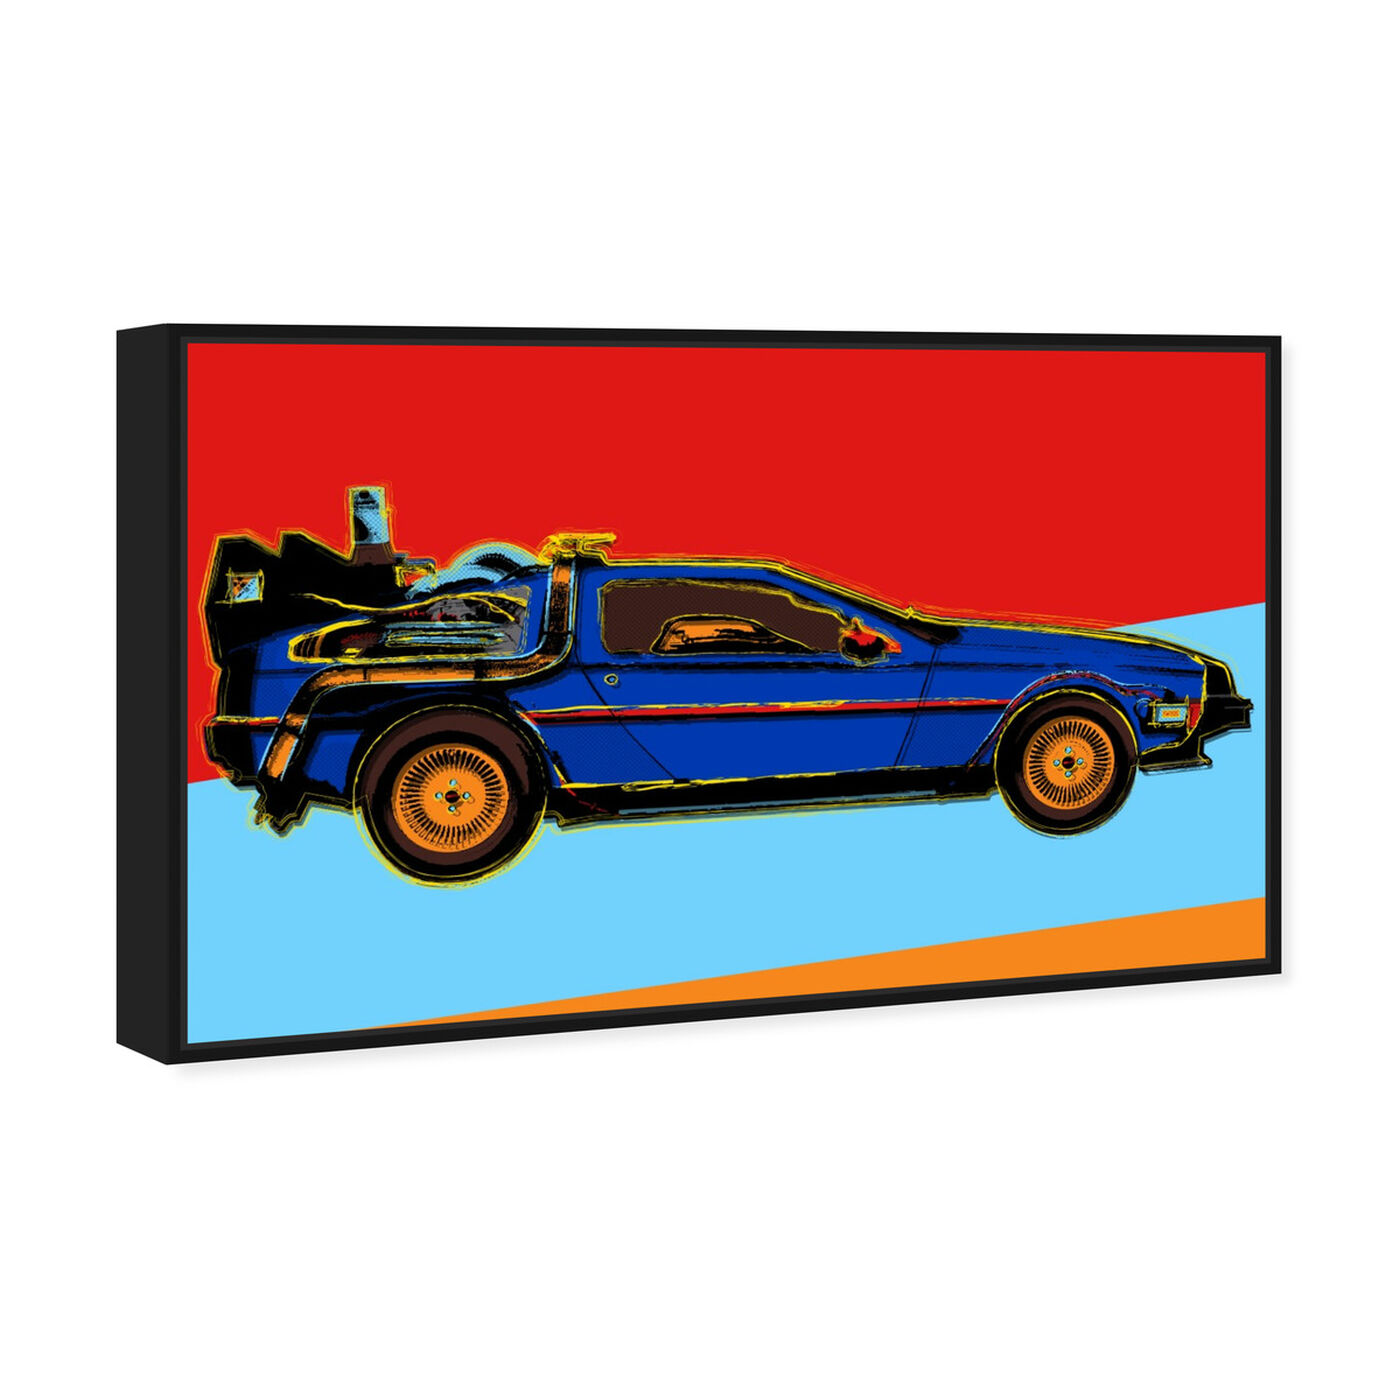 Angled view of Warhol style Delorean featuring transportation and automobiles art.